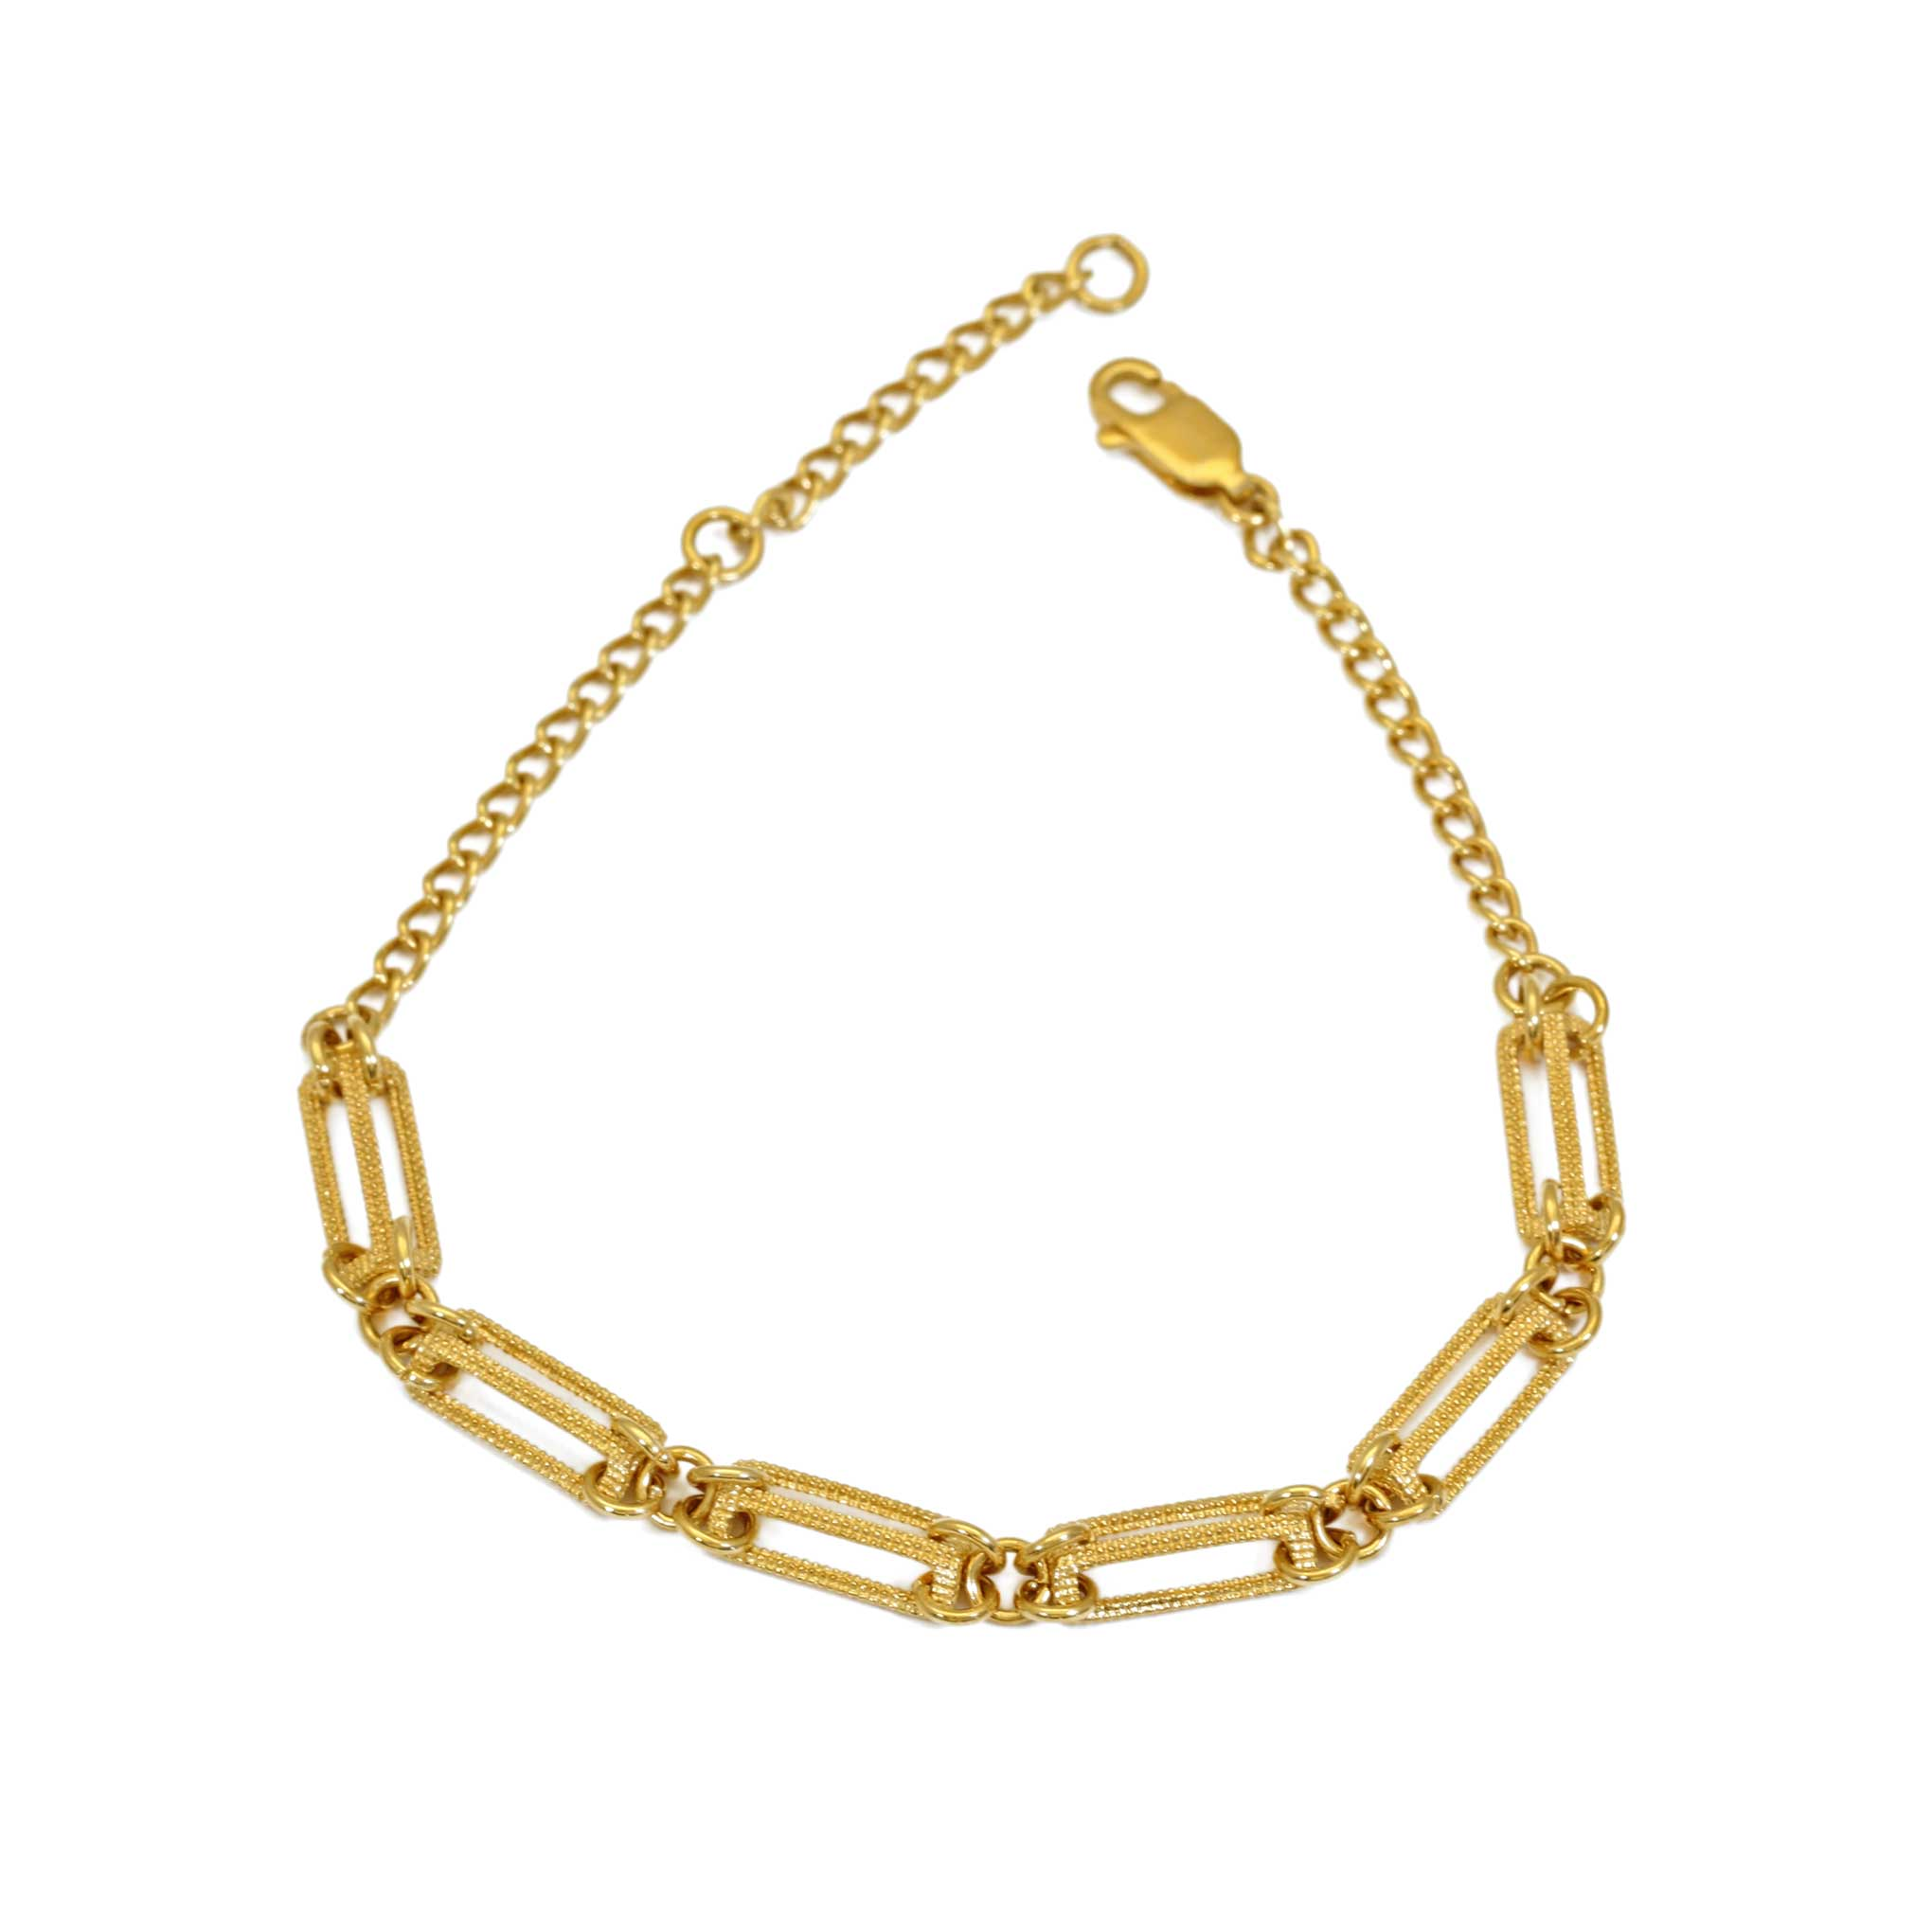 Gold bracelet with 6 sections